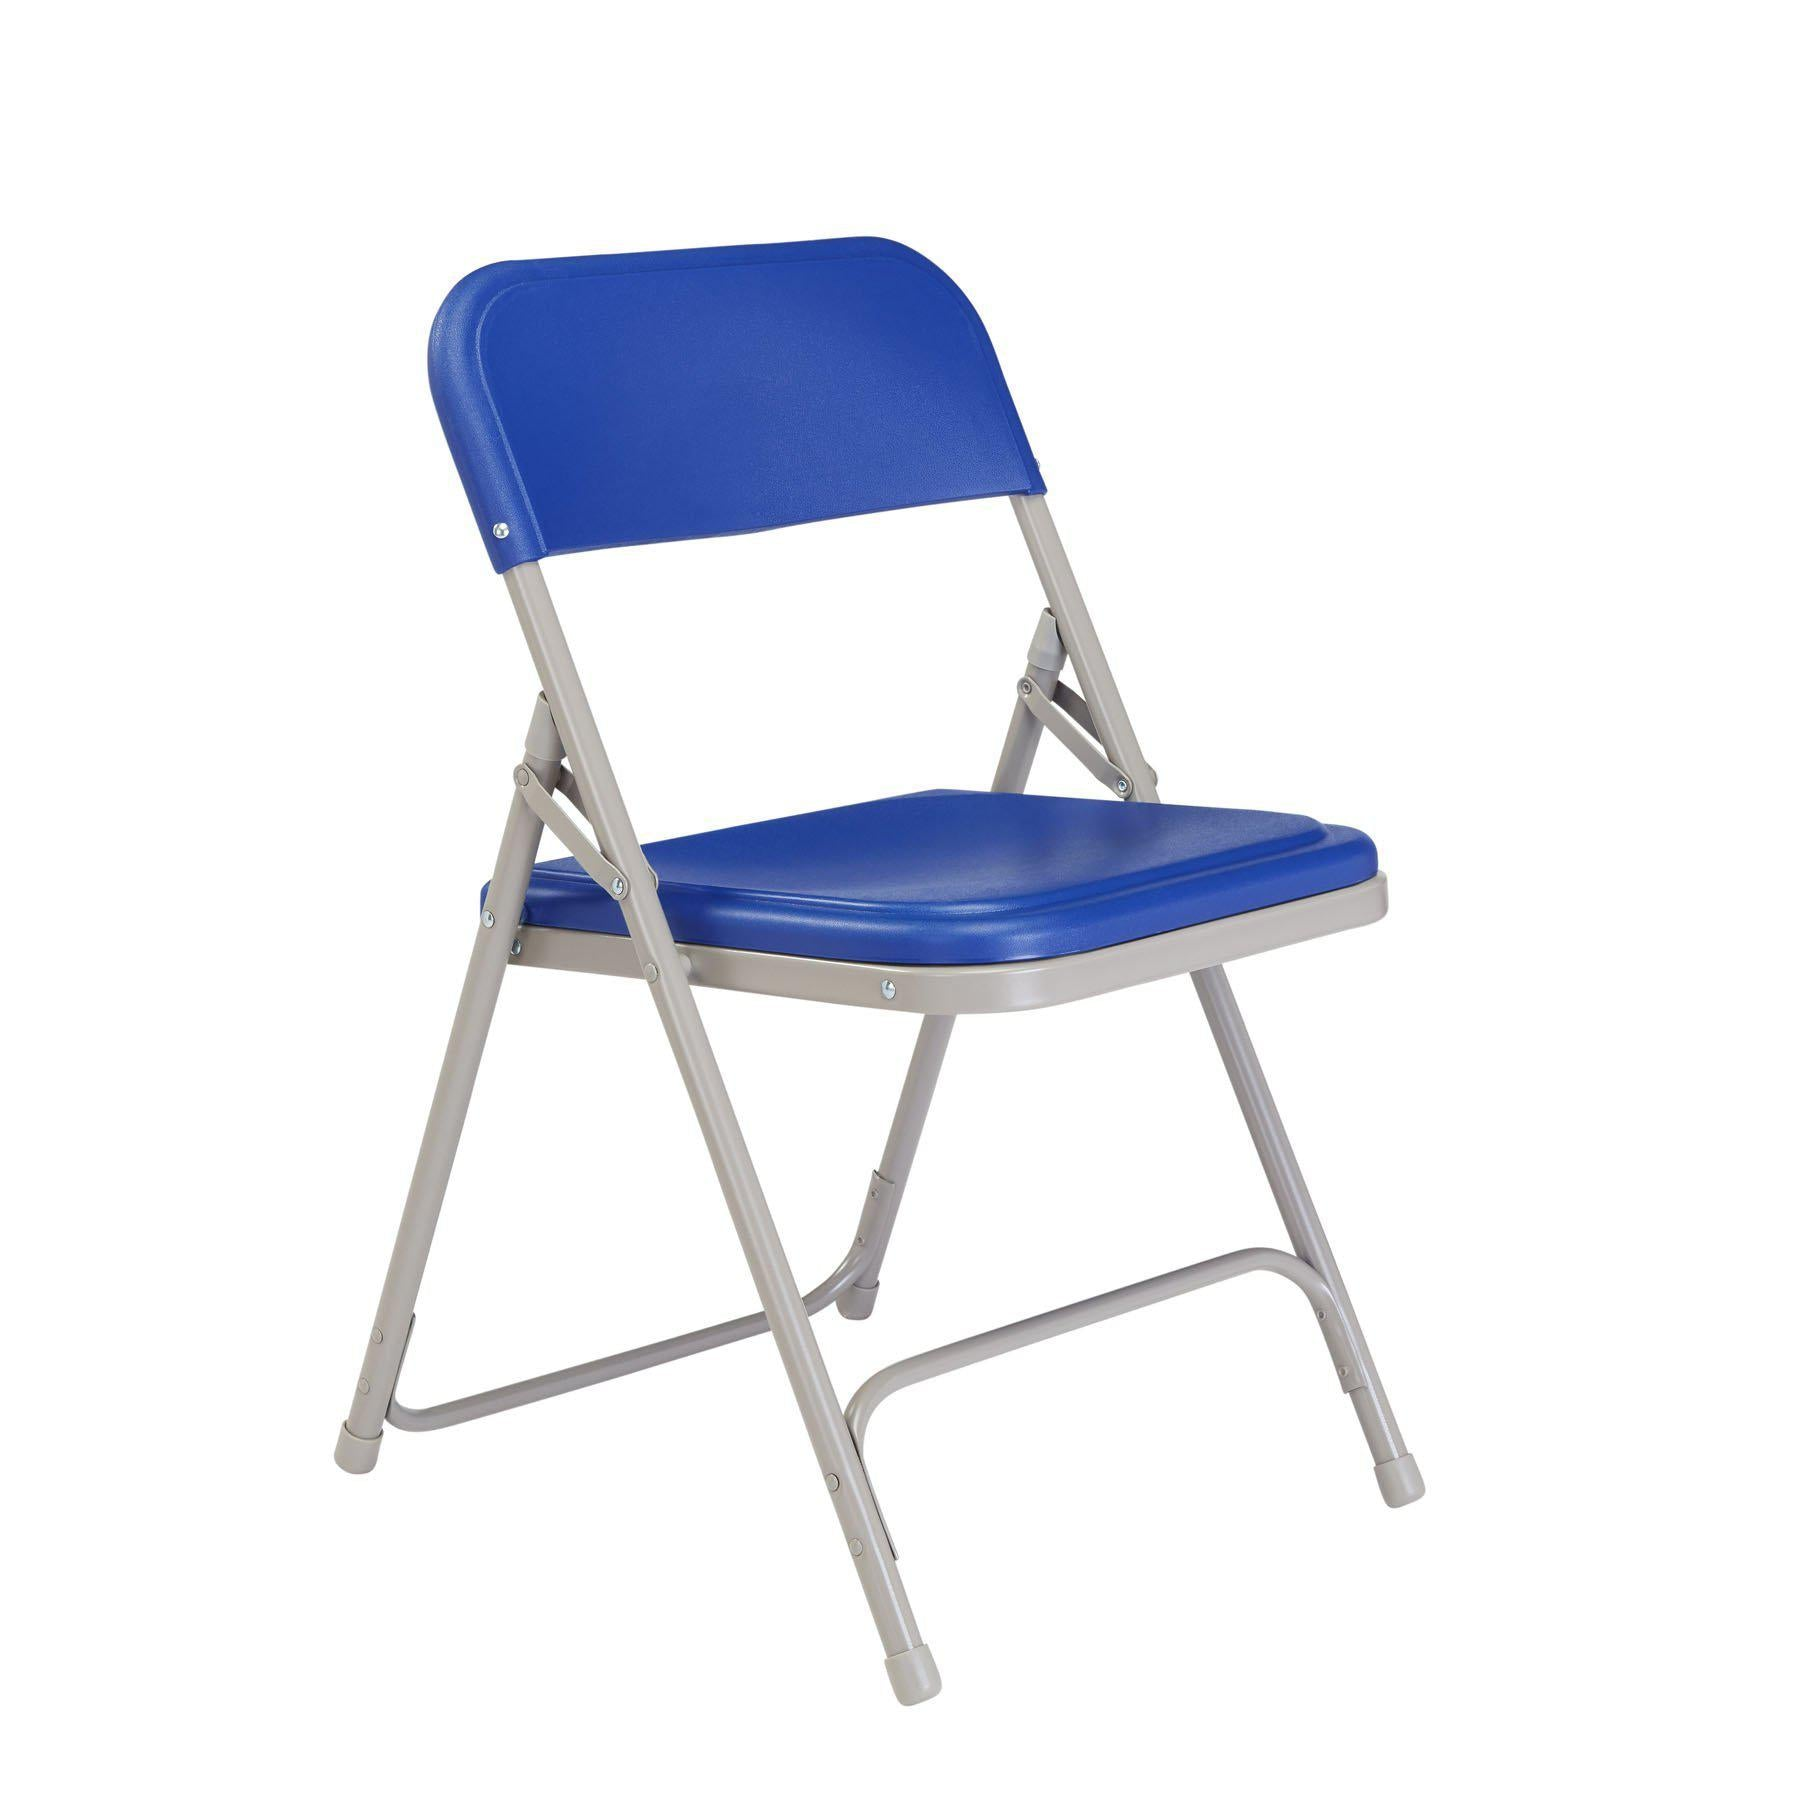 Premium Lightweight Plastic Folding Chair (Carton of 4)